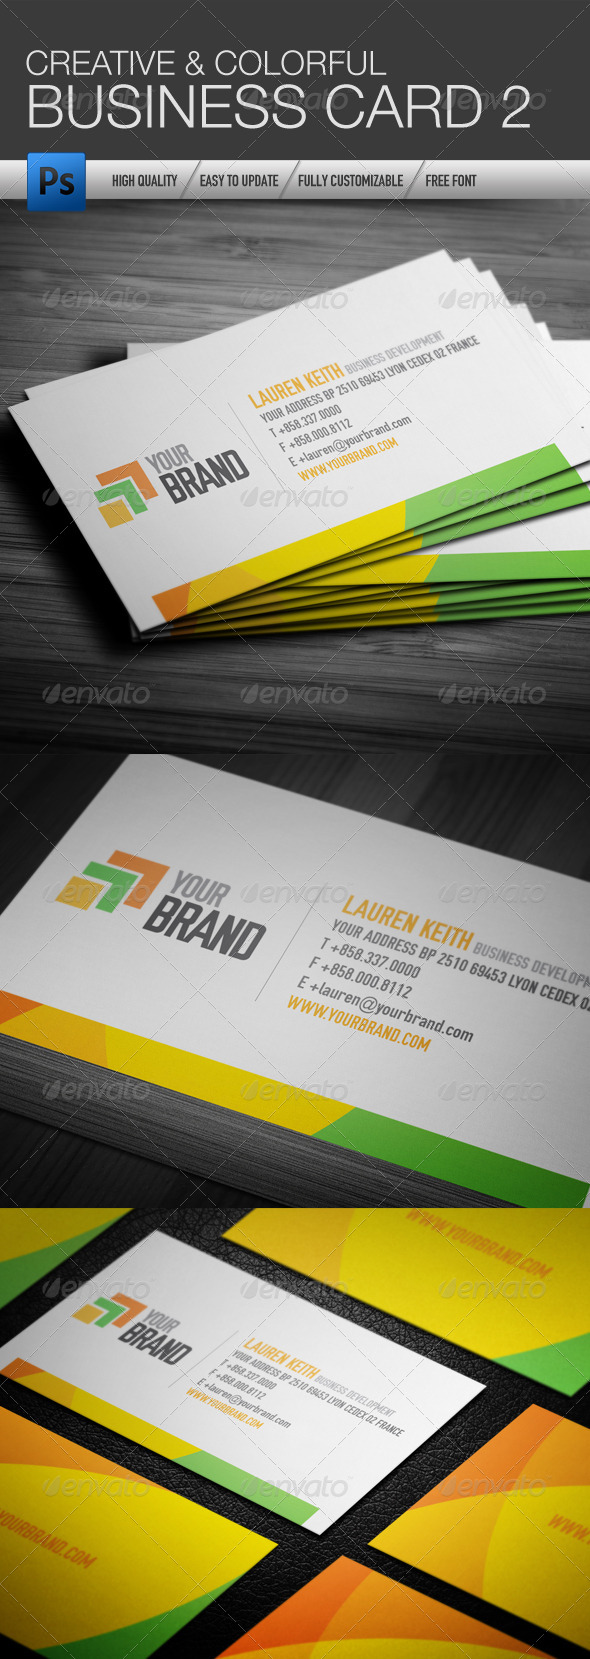 Creative and Colorful Business Card 2 - Creative Business Cards